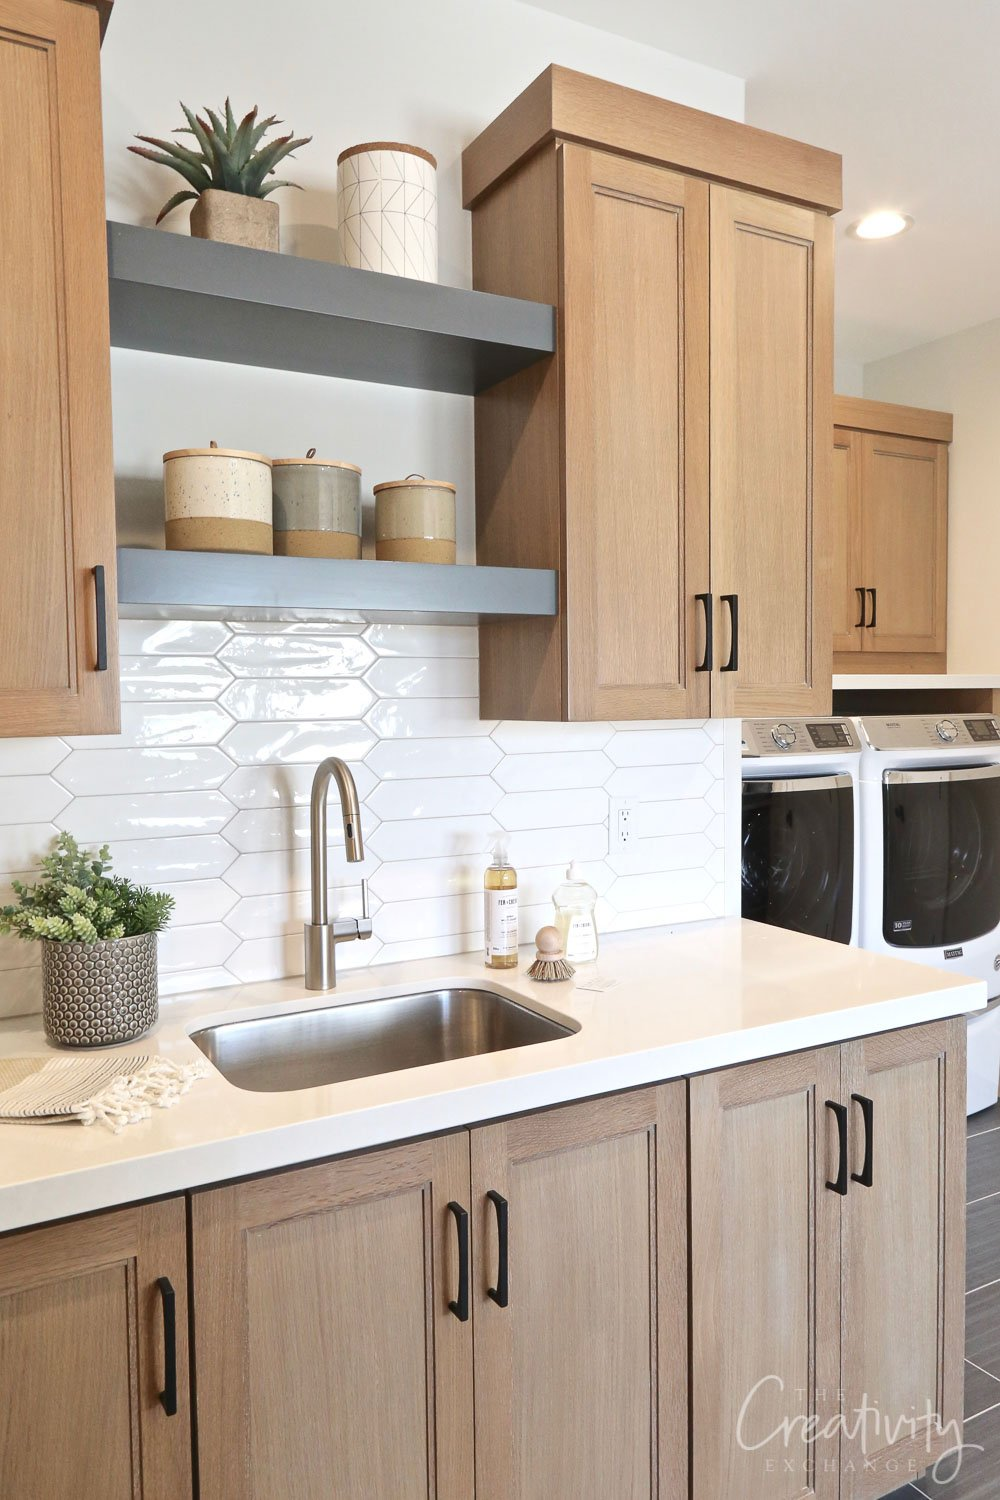 Large laundry room with oak cabinetry